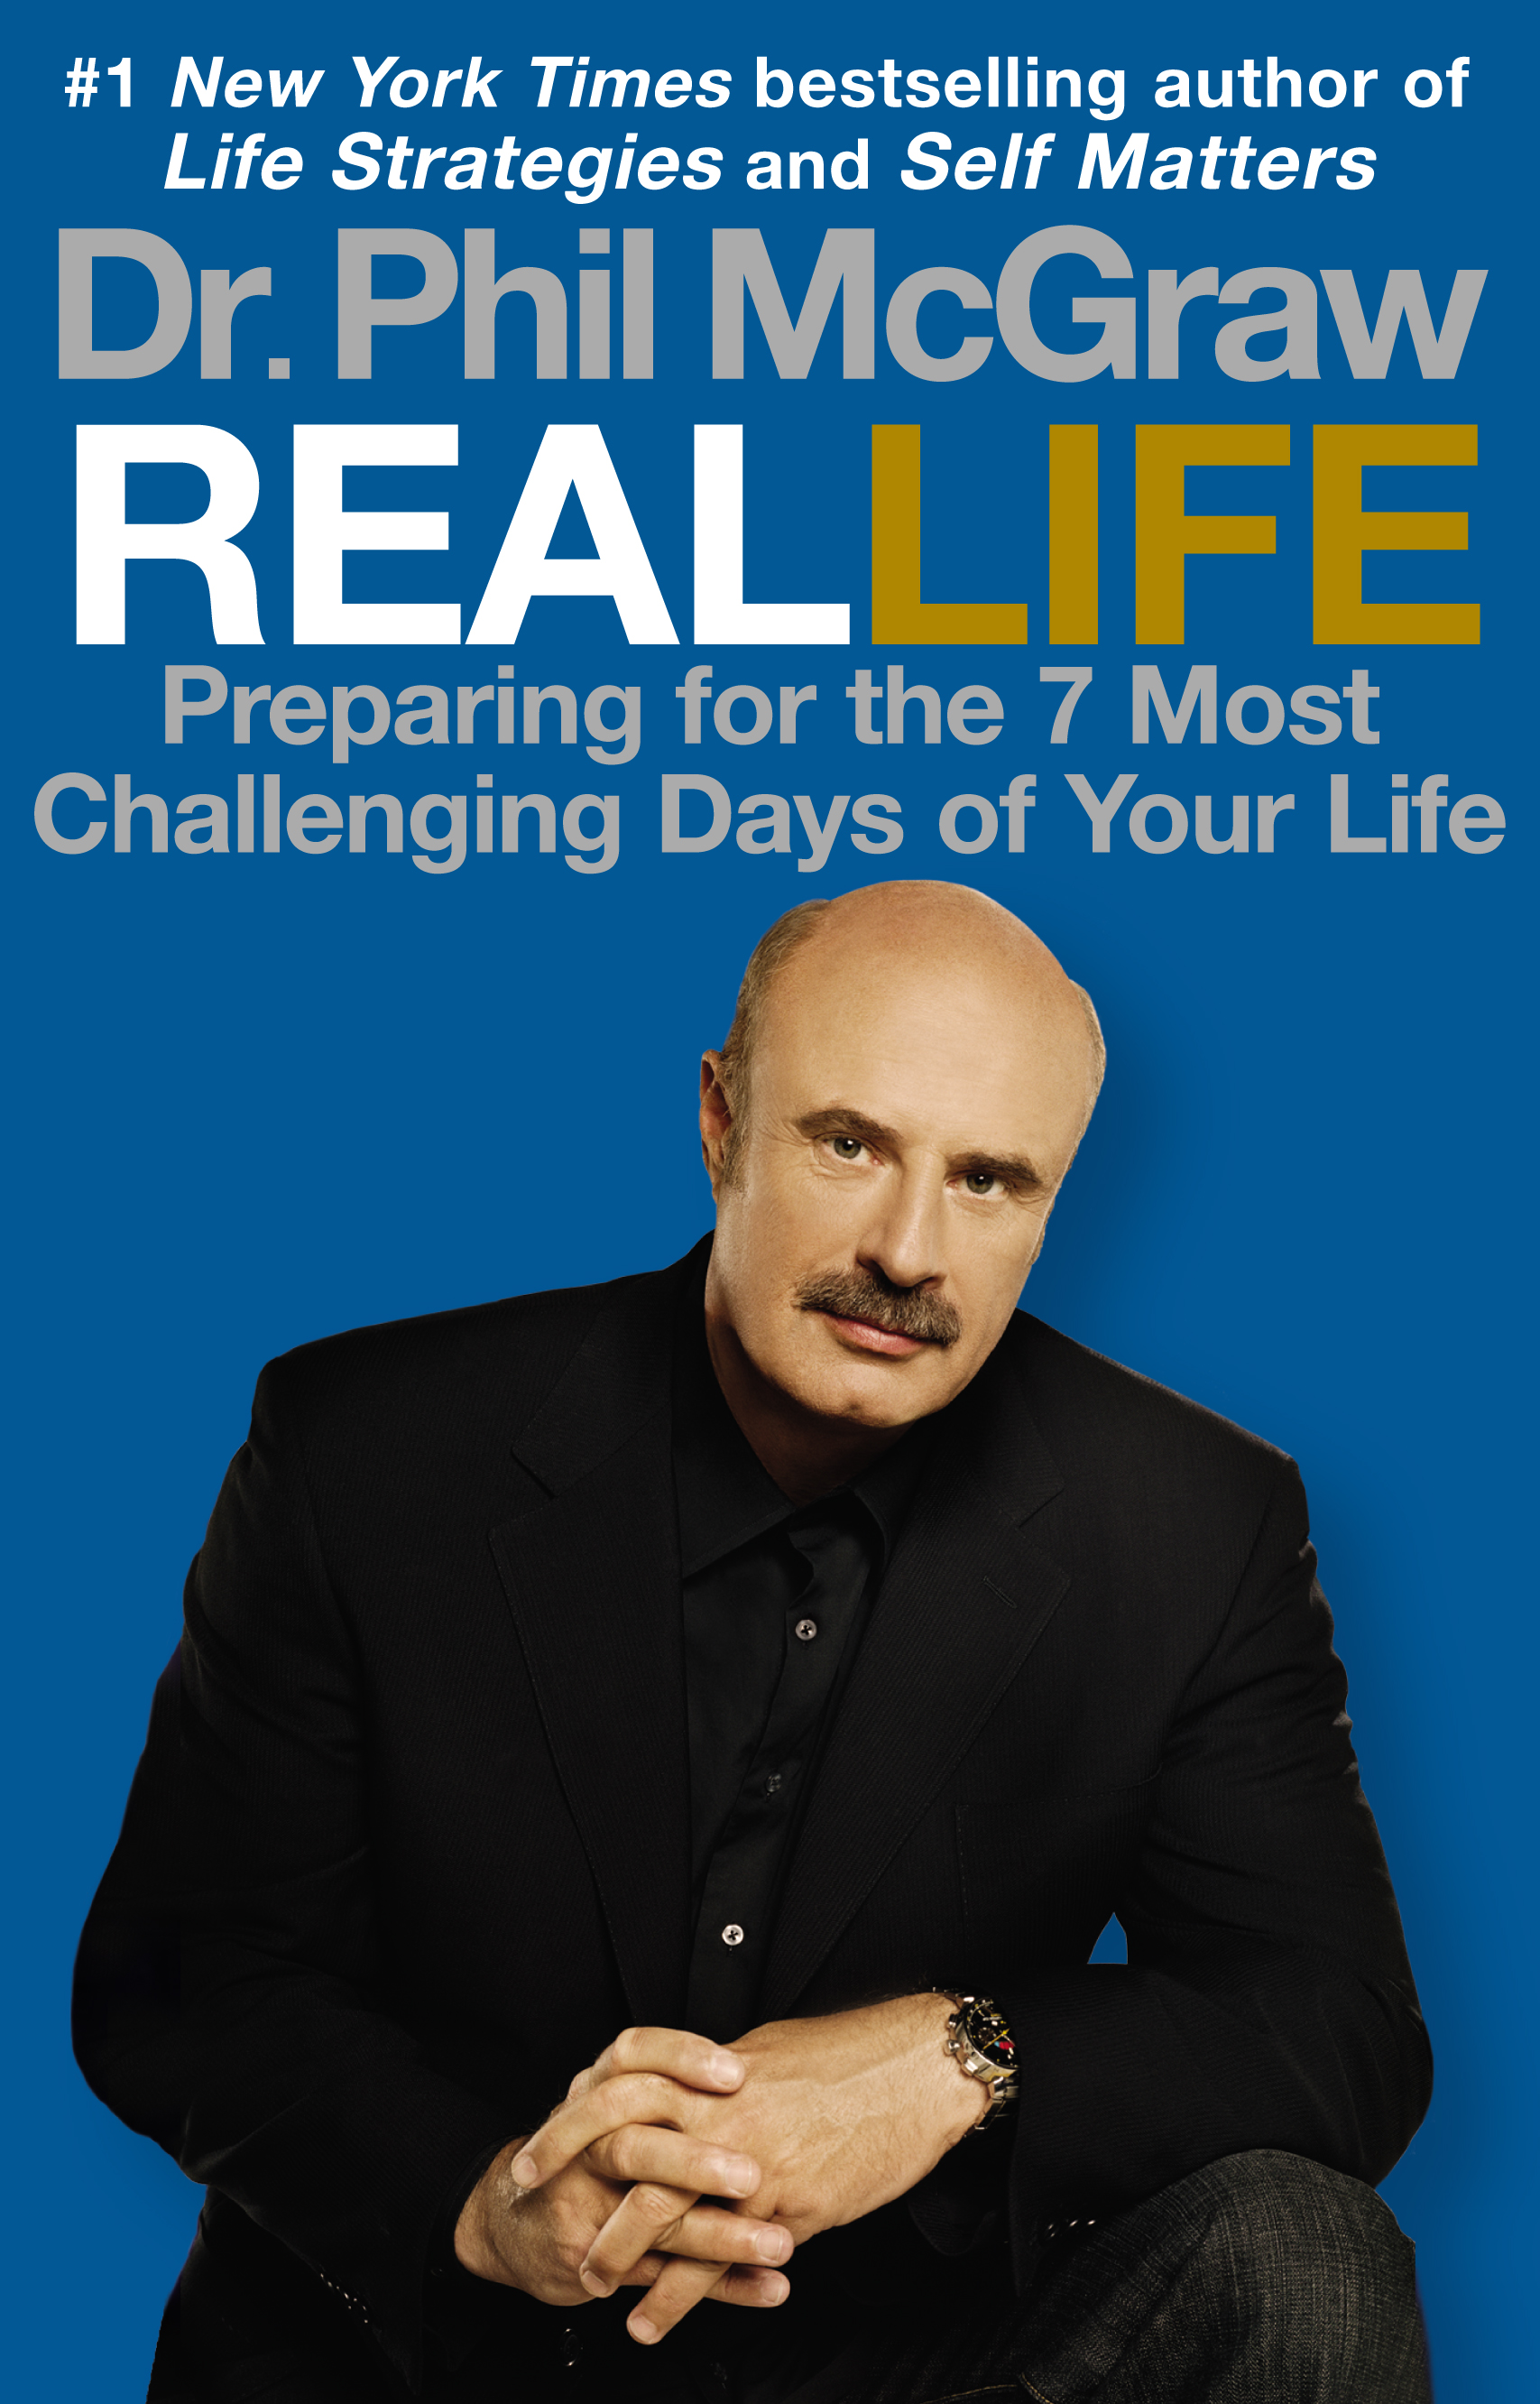 Dr. Phil McGraw List of Books by Author Dr. Phil McGraw